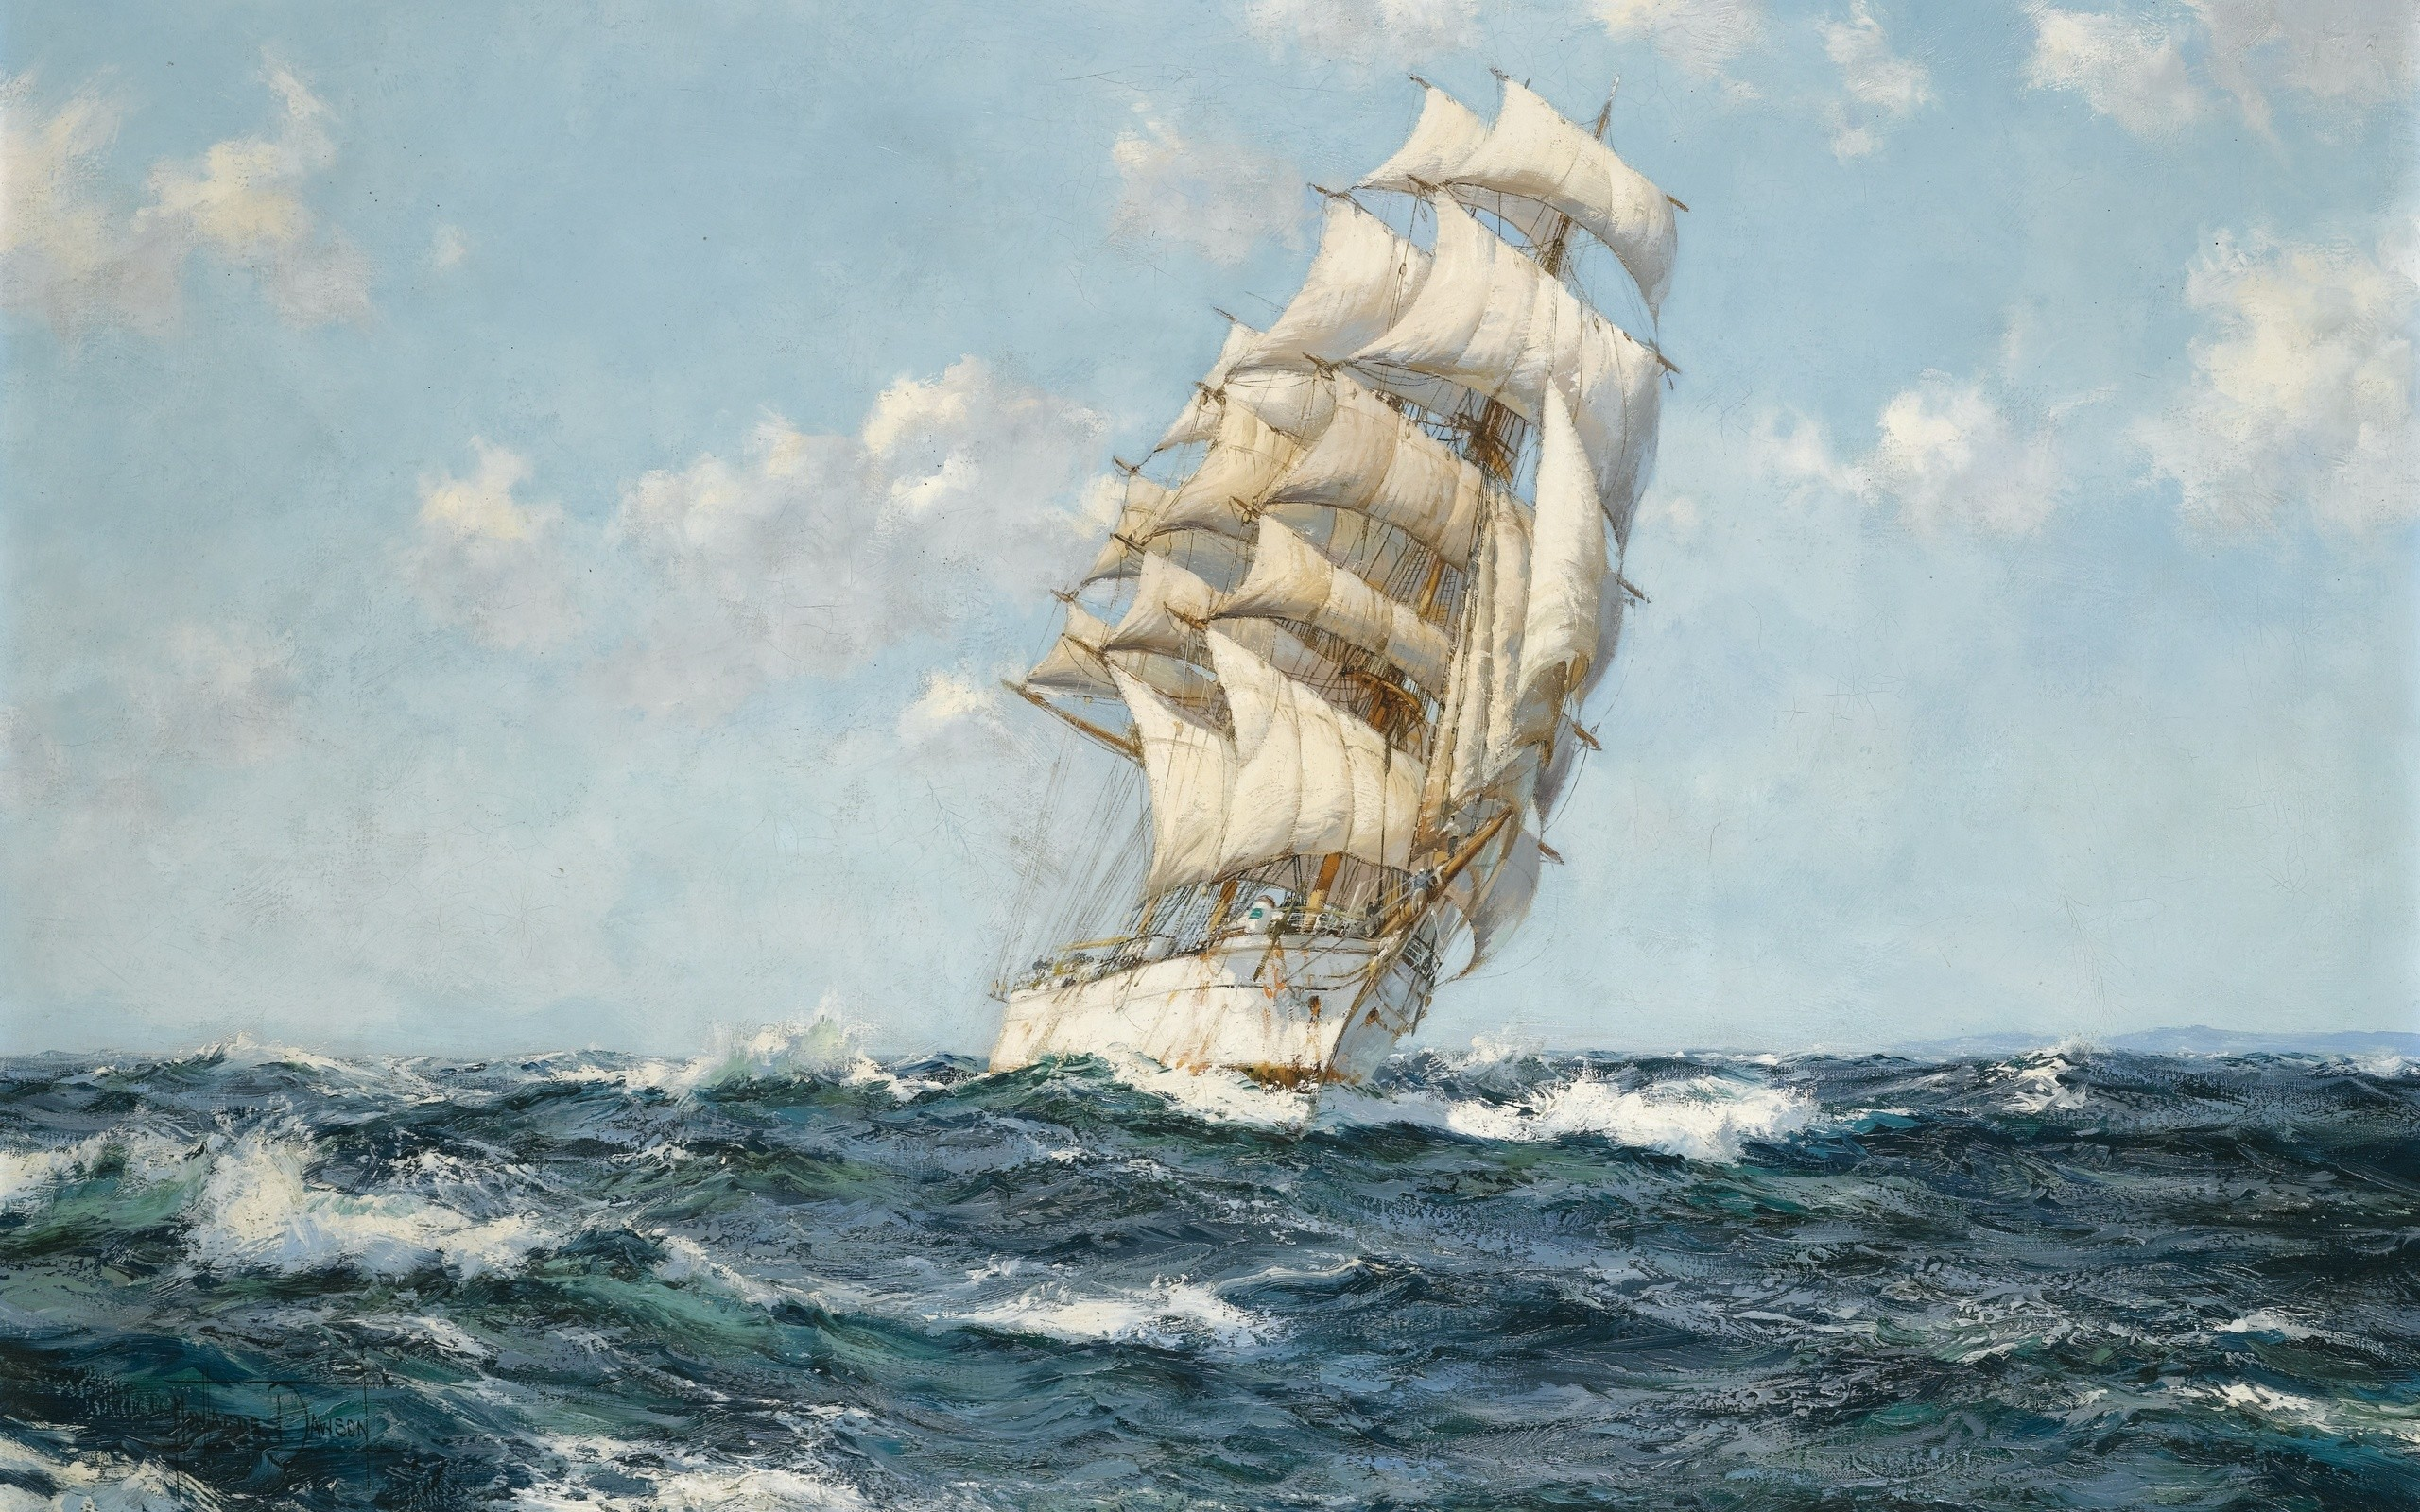 Res: 2560x1600, Artistic Sailing Ship Background